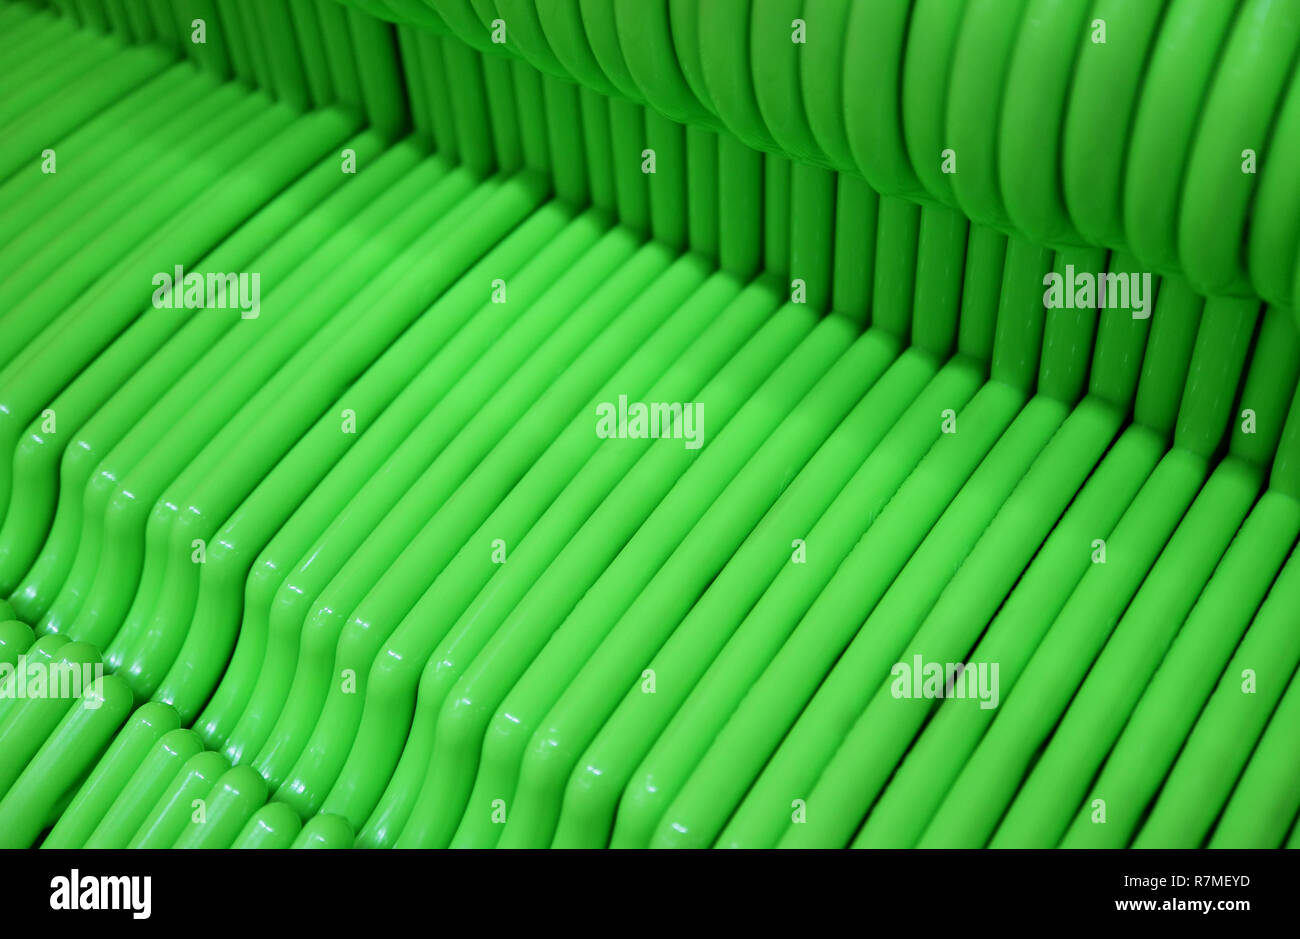 Lined Up Empty Vivid Green Clothes Hangers - Stock Image